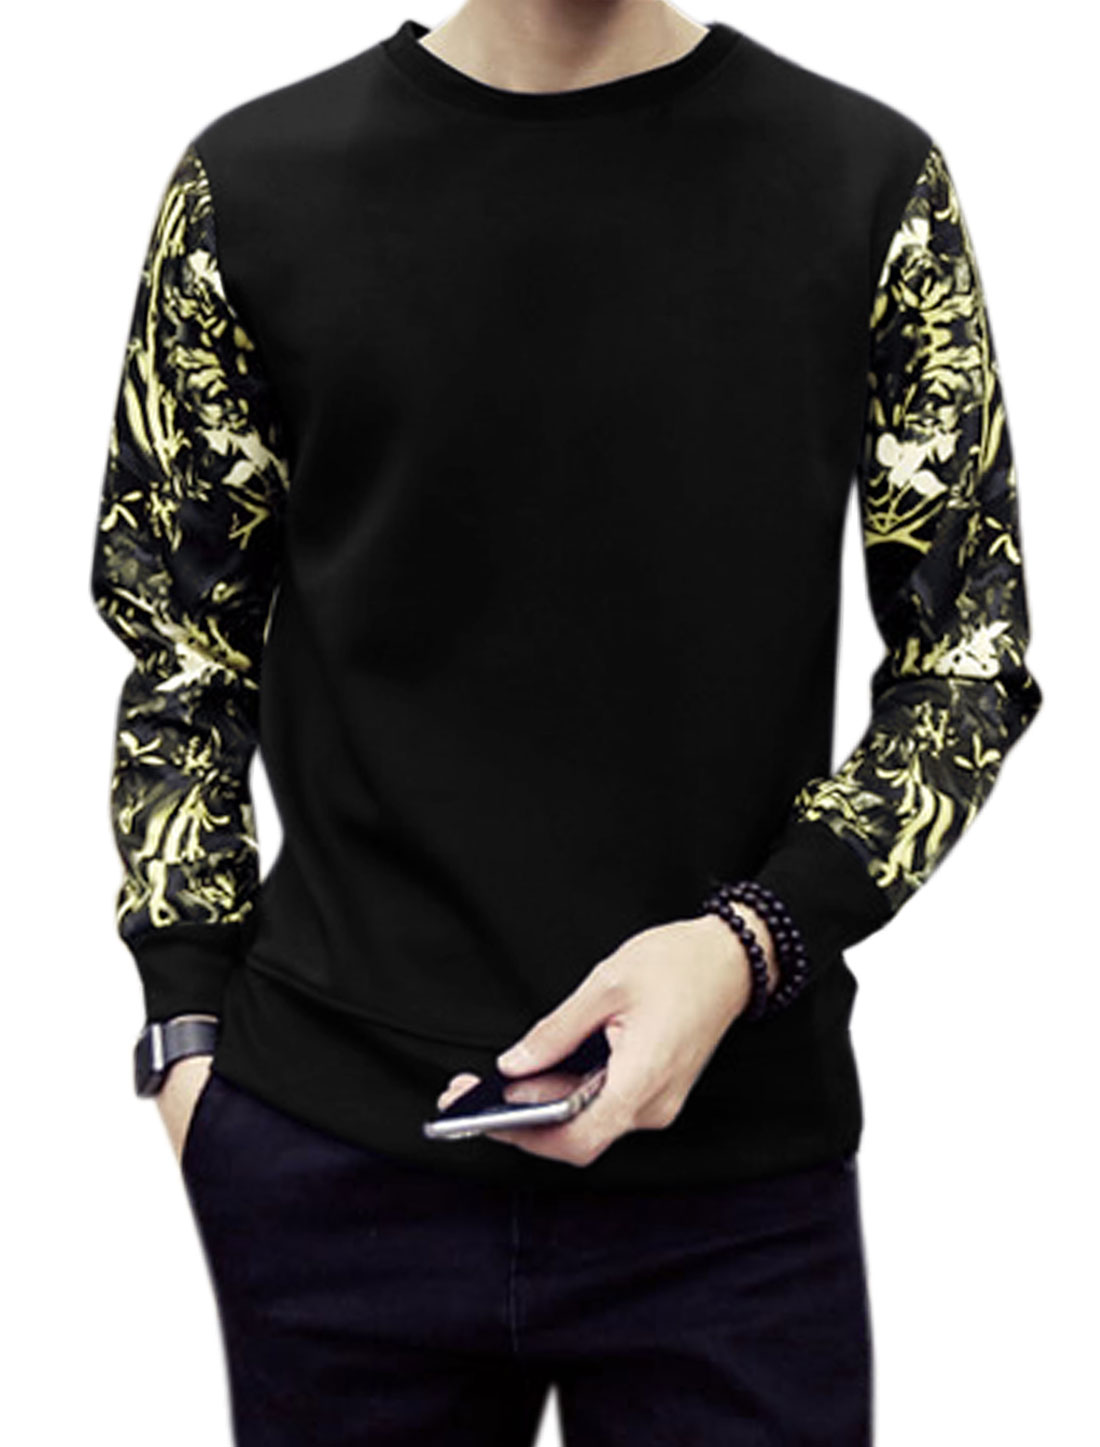 Man Long Sleeves Crew Neck Flower Prints Casual Sweatshirt Black M